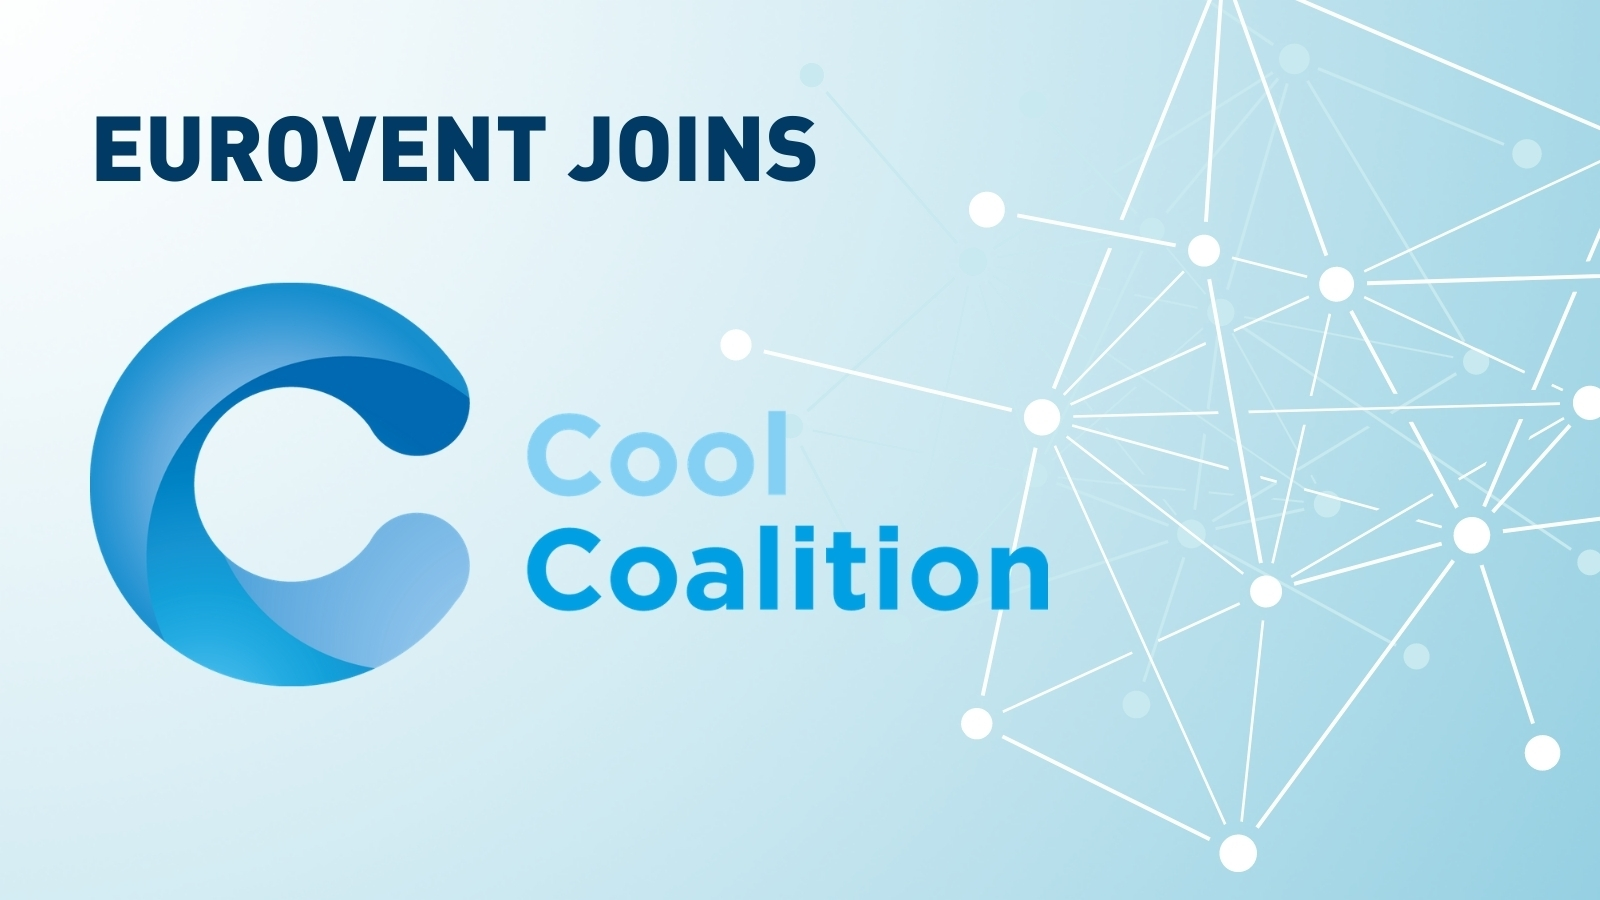 2021 - Eurovent joins Cool Coalition